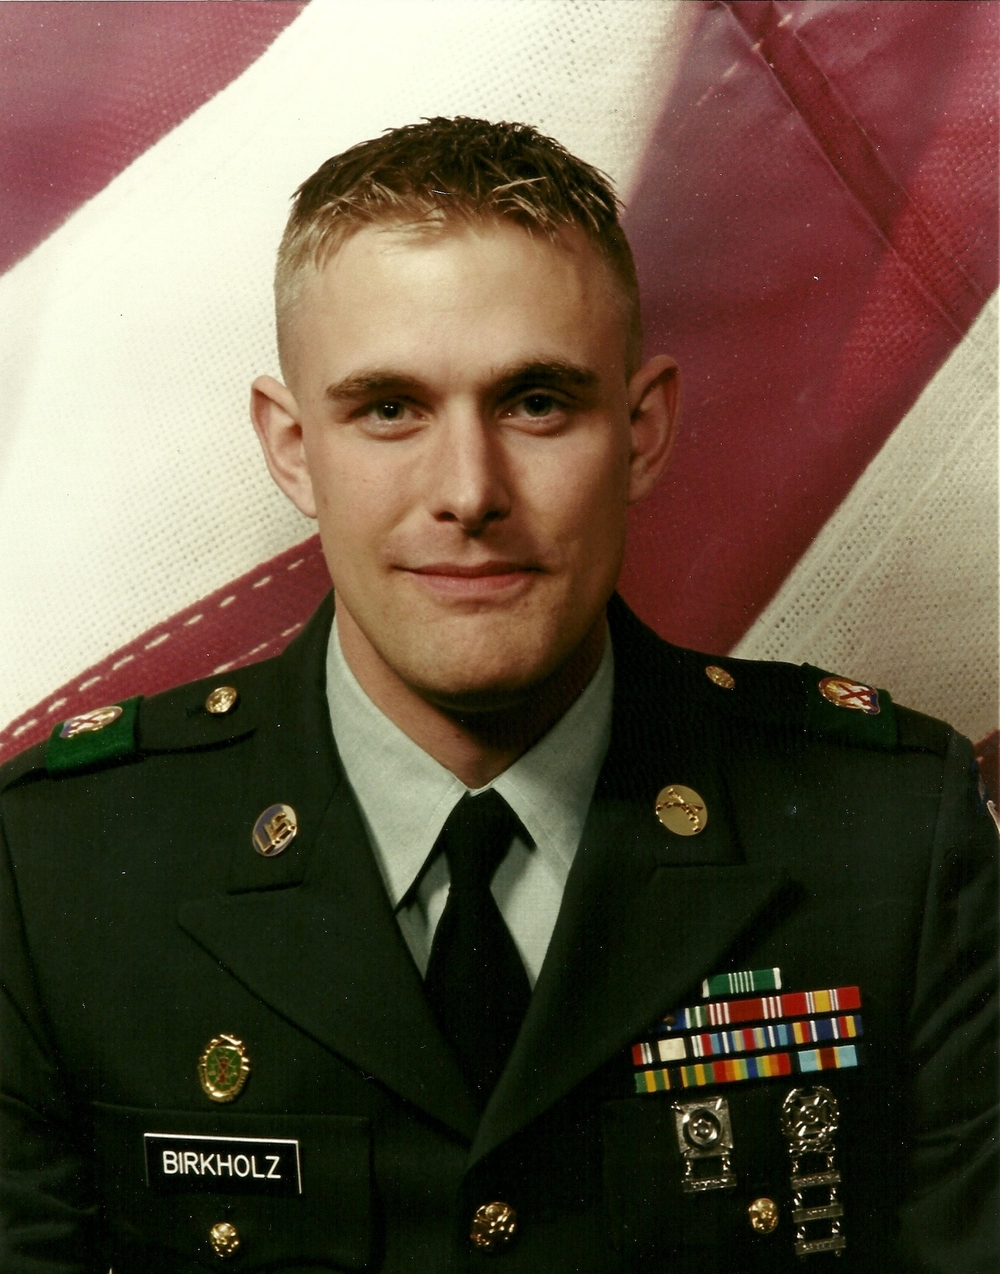 Sgt. Birkholz May 2005,  511th Military Police, 10th Mountain Division, Fort Drum, N.Y.